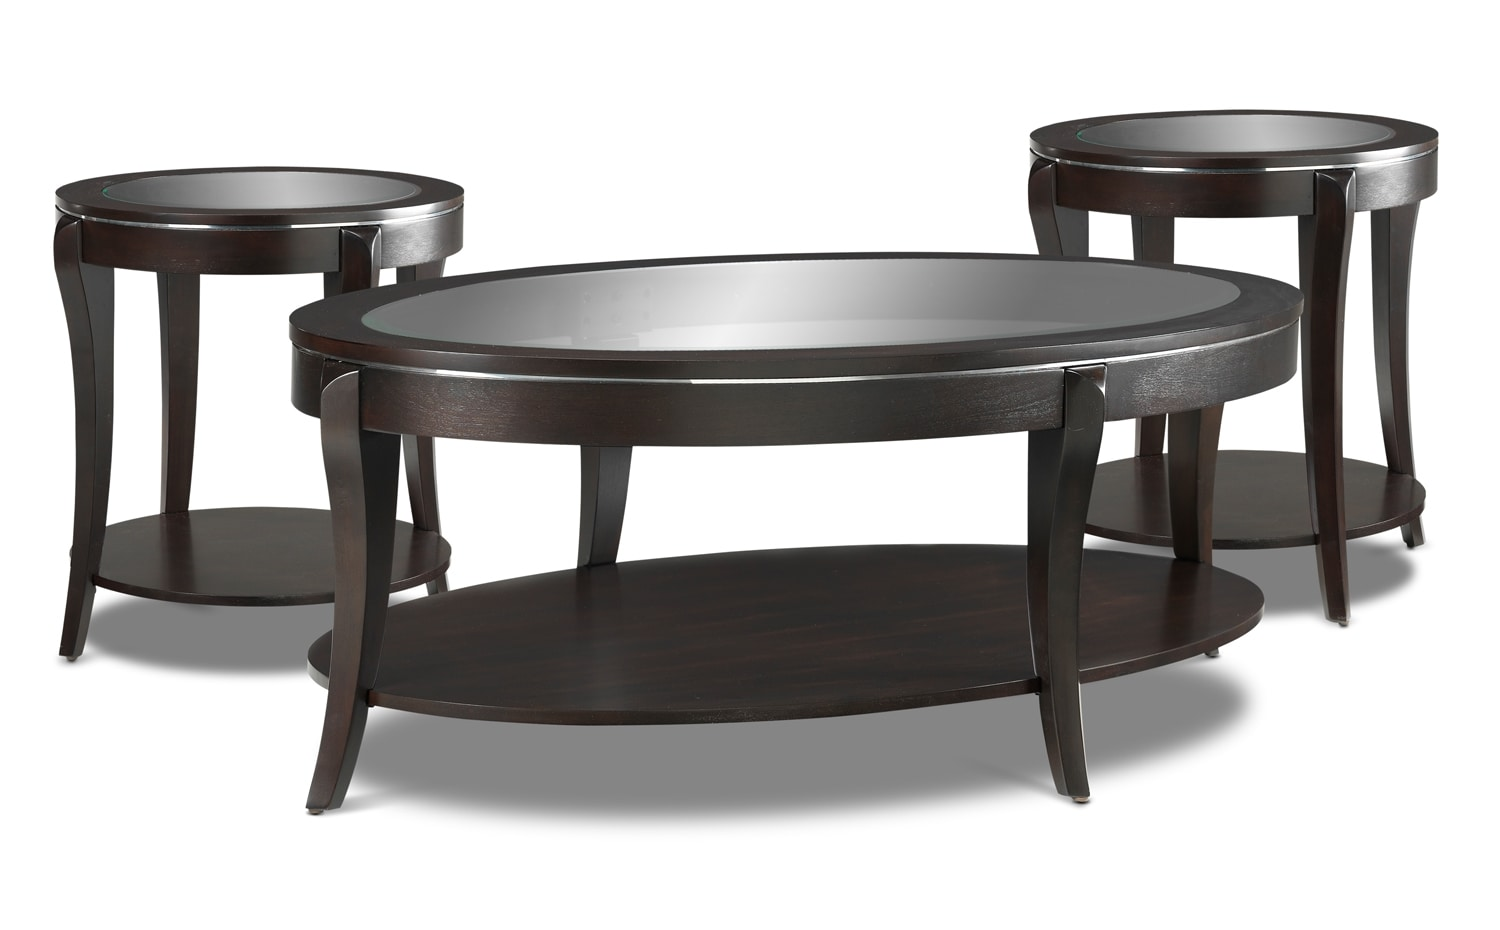 Taurus Coffee Table and Two End Tables - Espresso